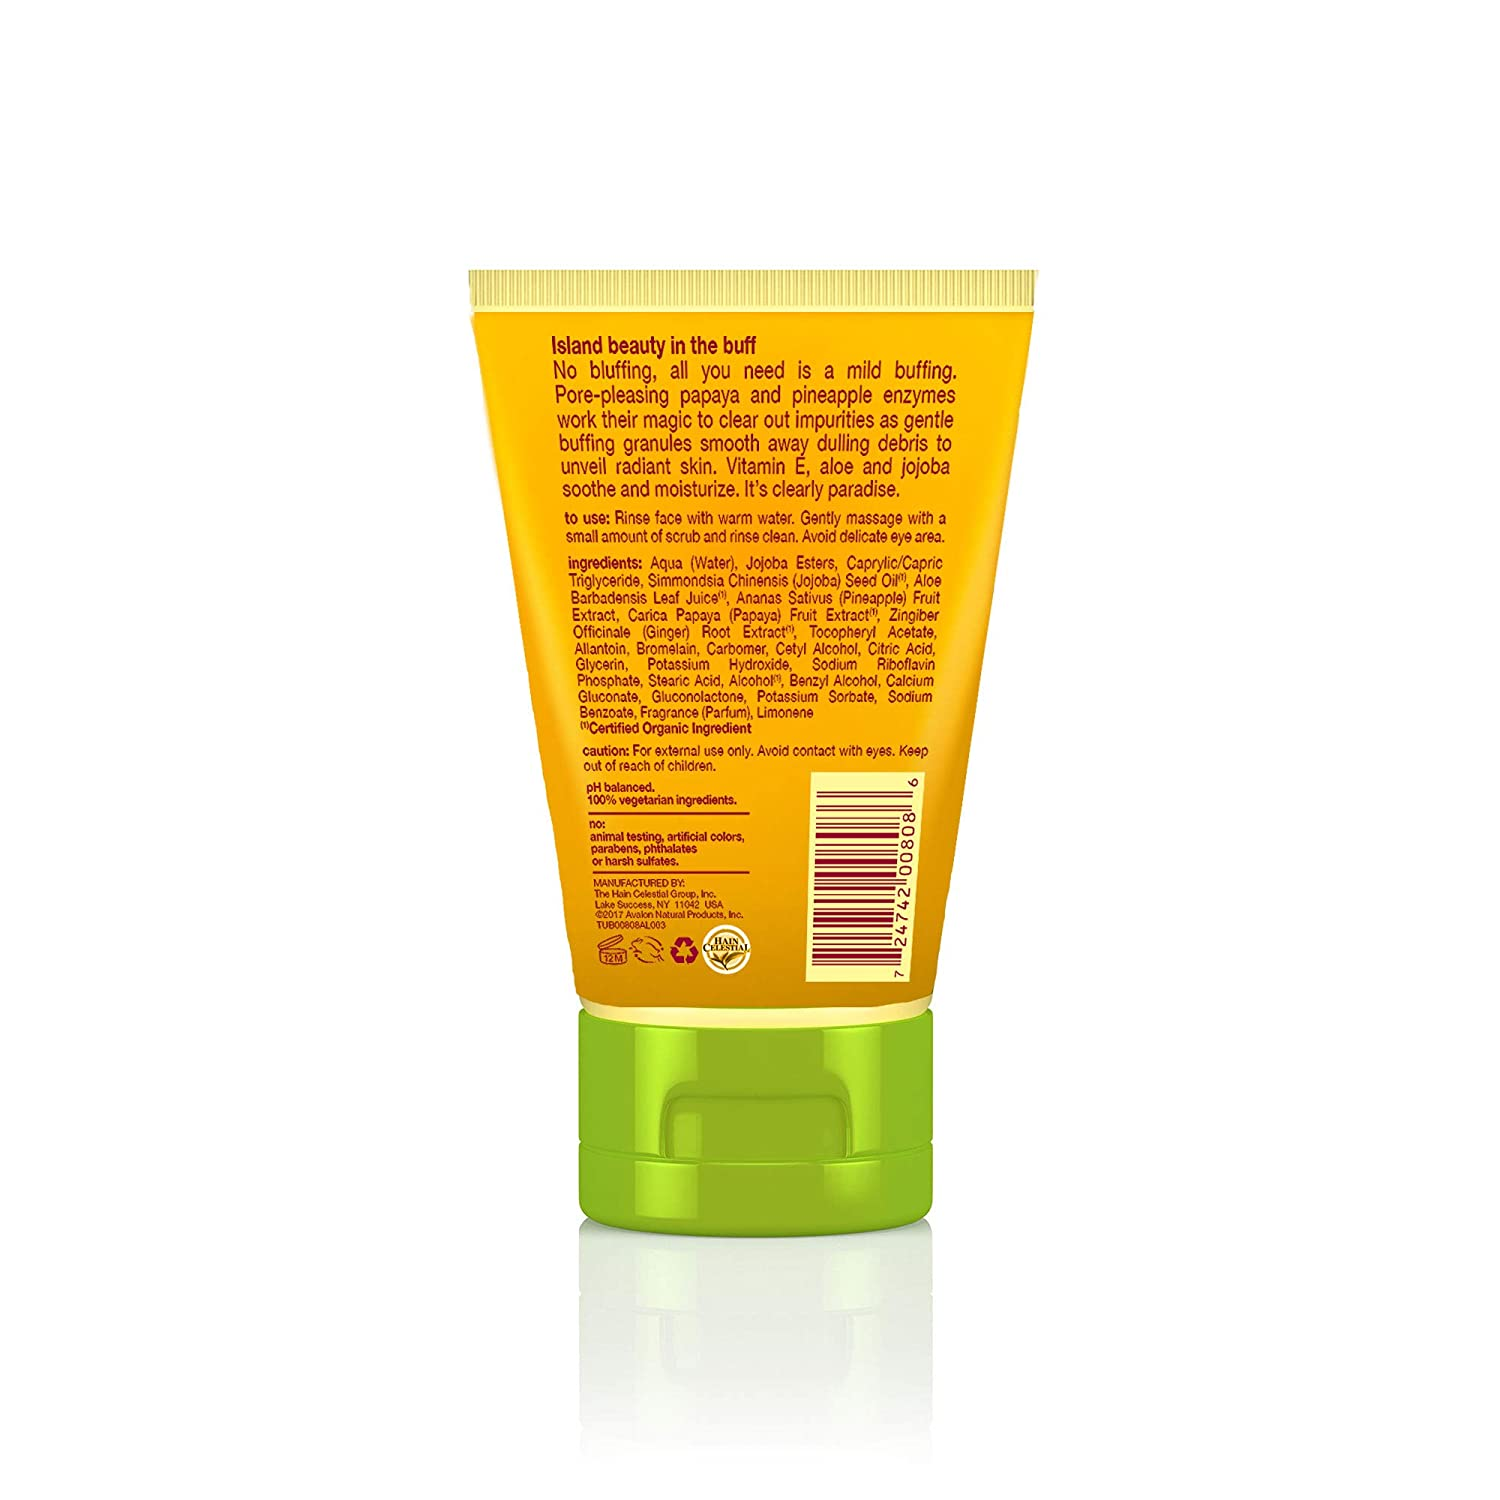 Amazon.com: Alba Botanica Face Scrub, 4 onza: Beauty